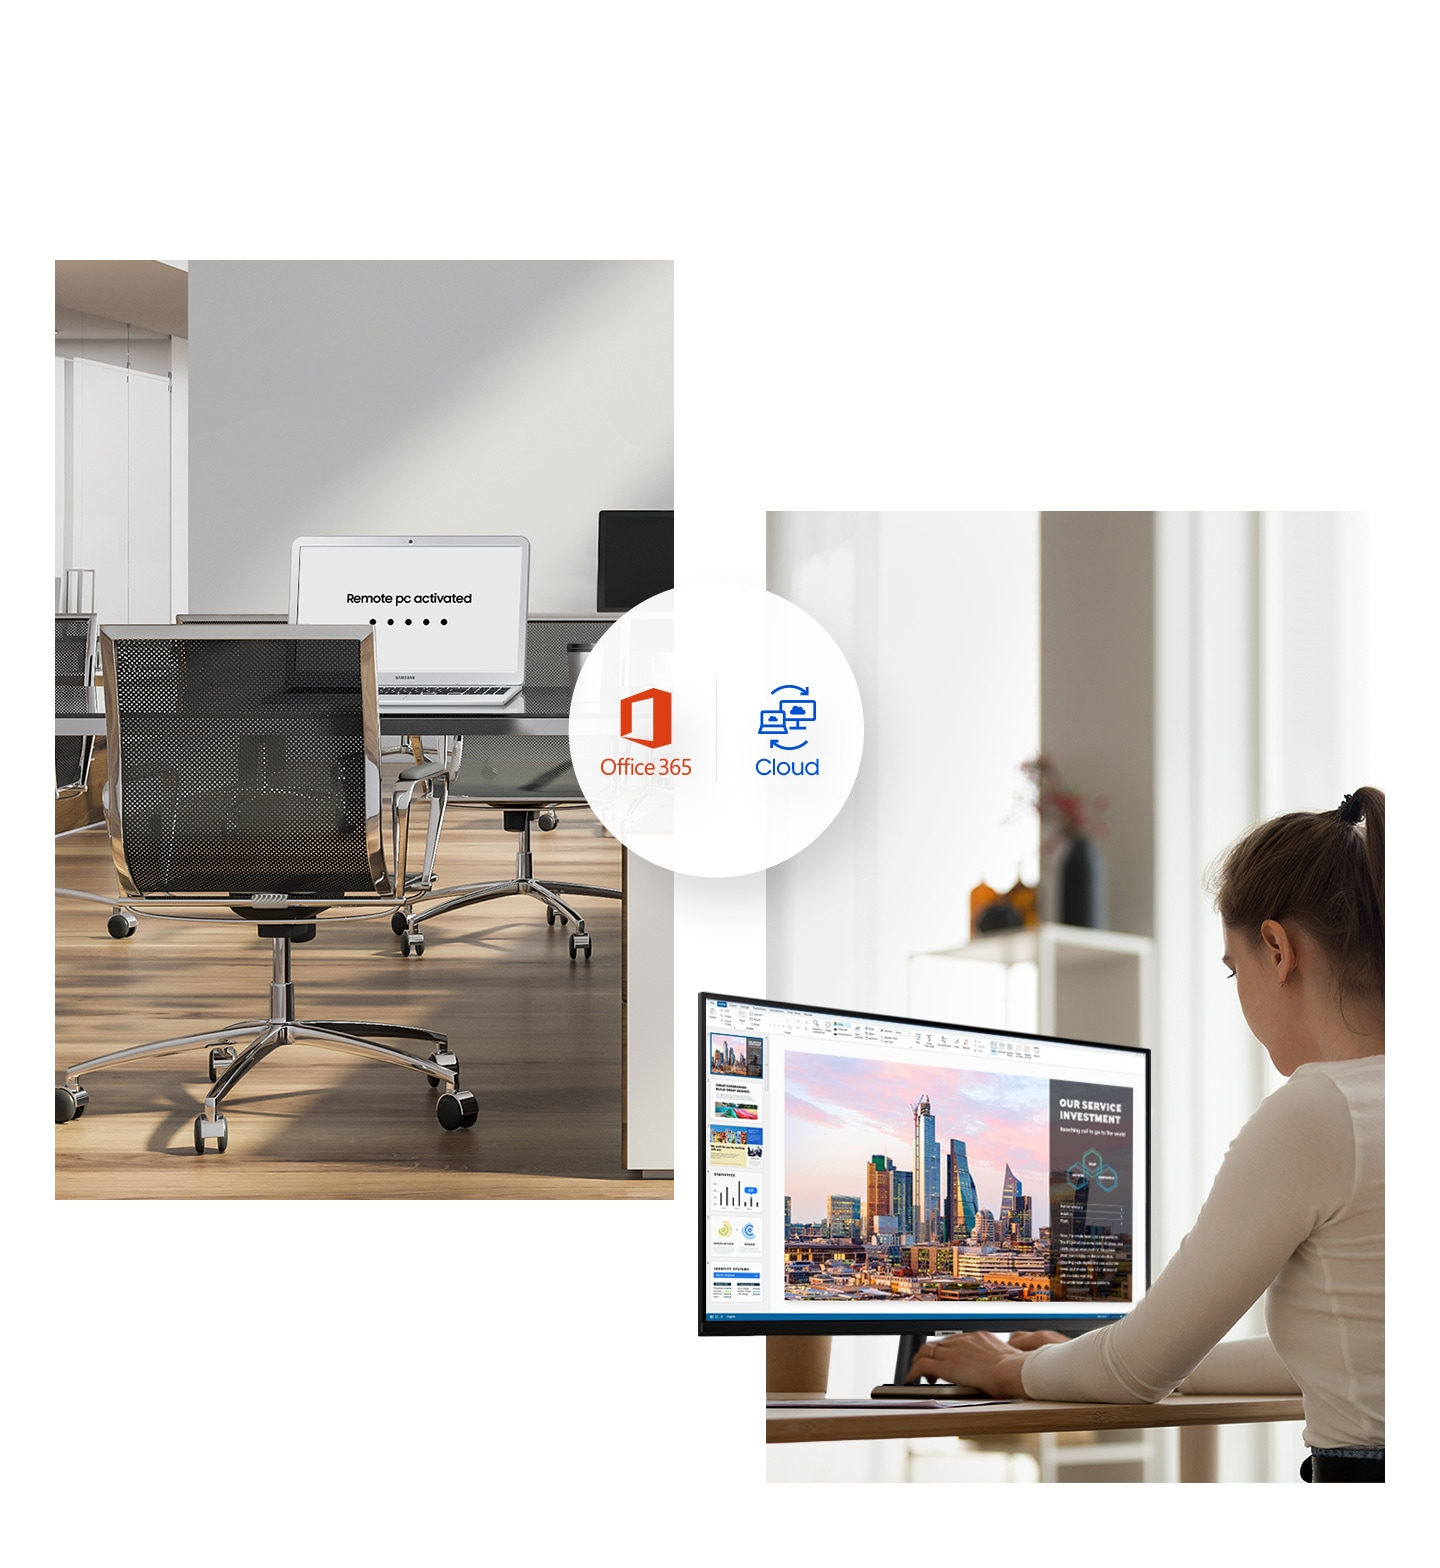 An office laptop shows \Remote PC activated.\ A woman at home uses a monitor. Office 365 and Cloud are shown in between.